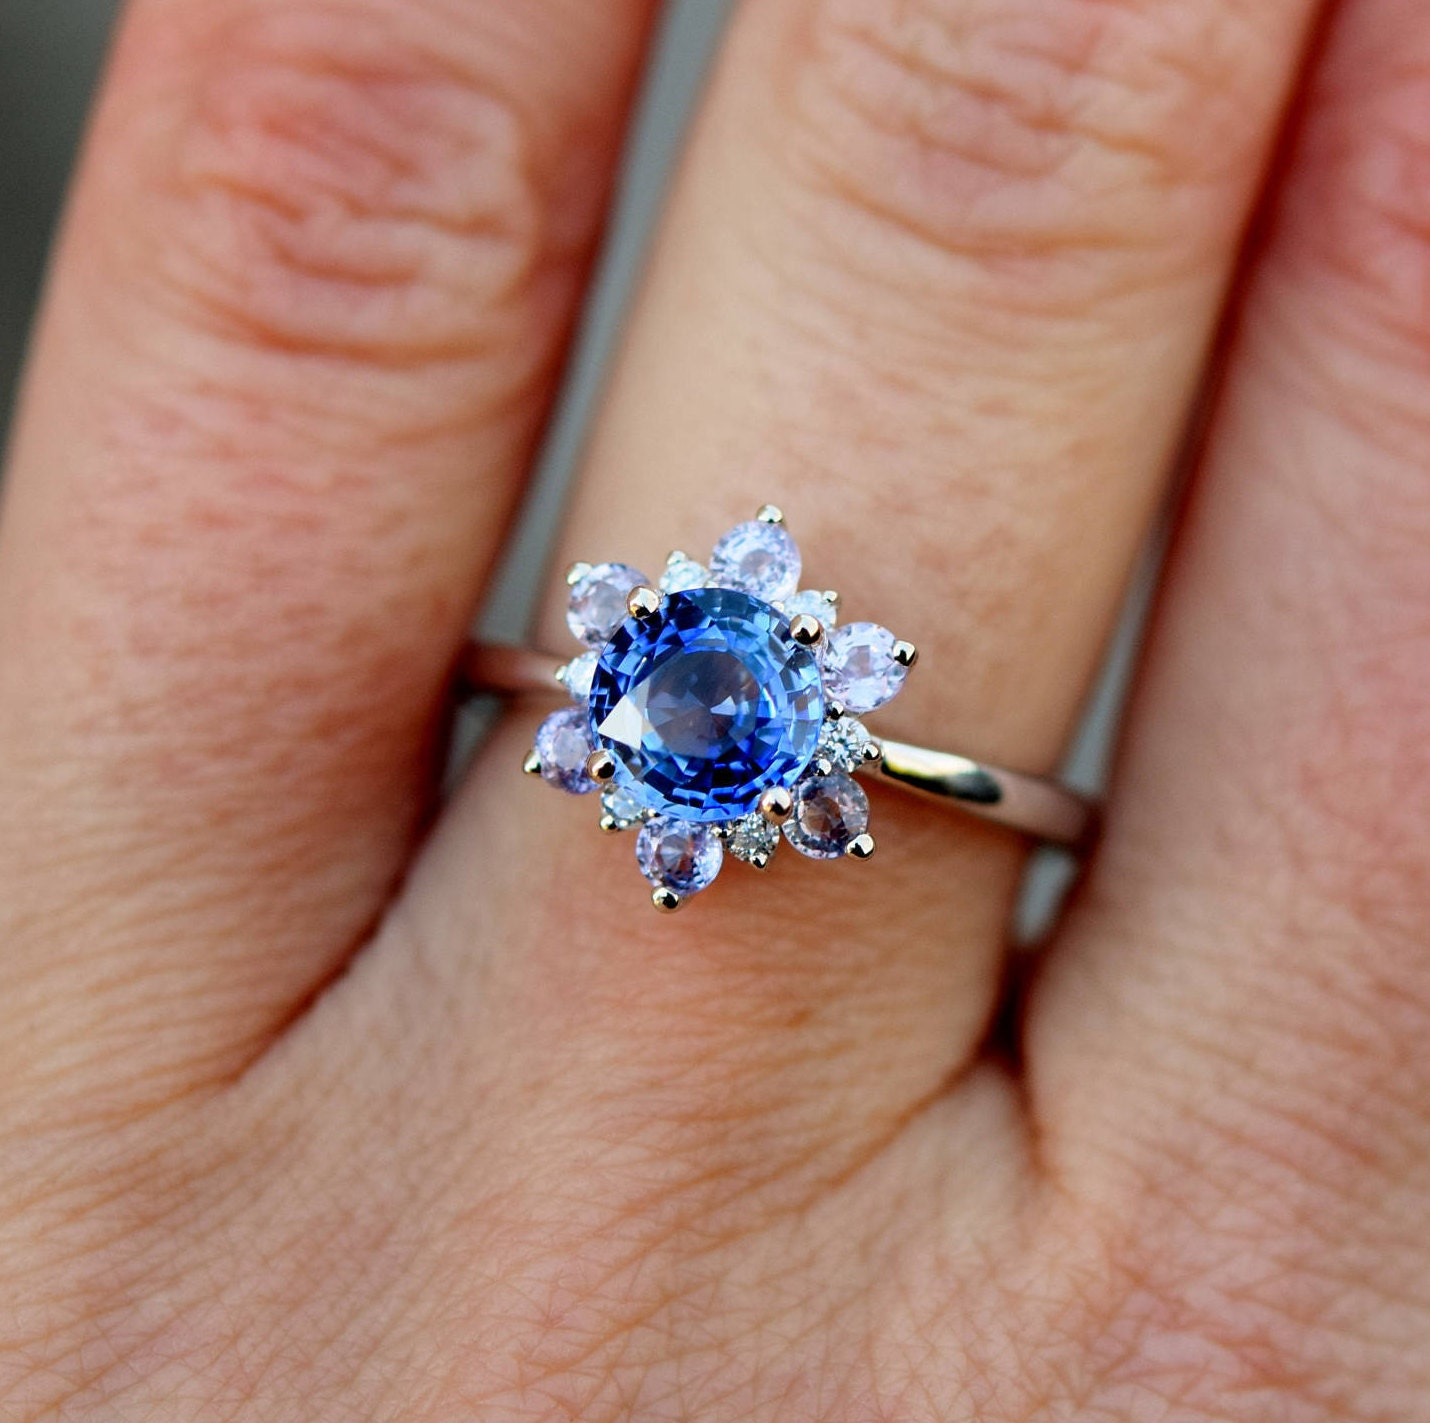 eive engagement jewelry jewelr ring il blue original rings gold handmade products white sapphire in fullxfull